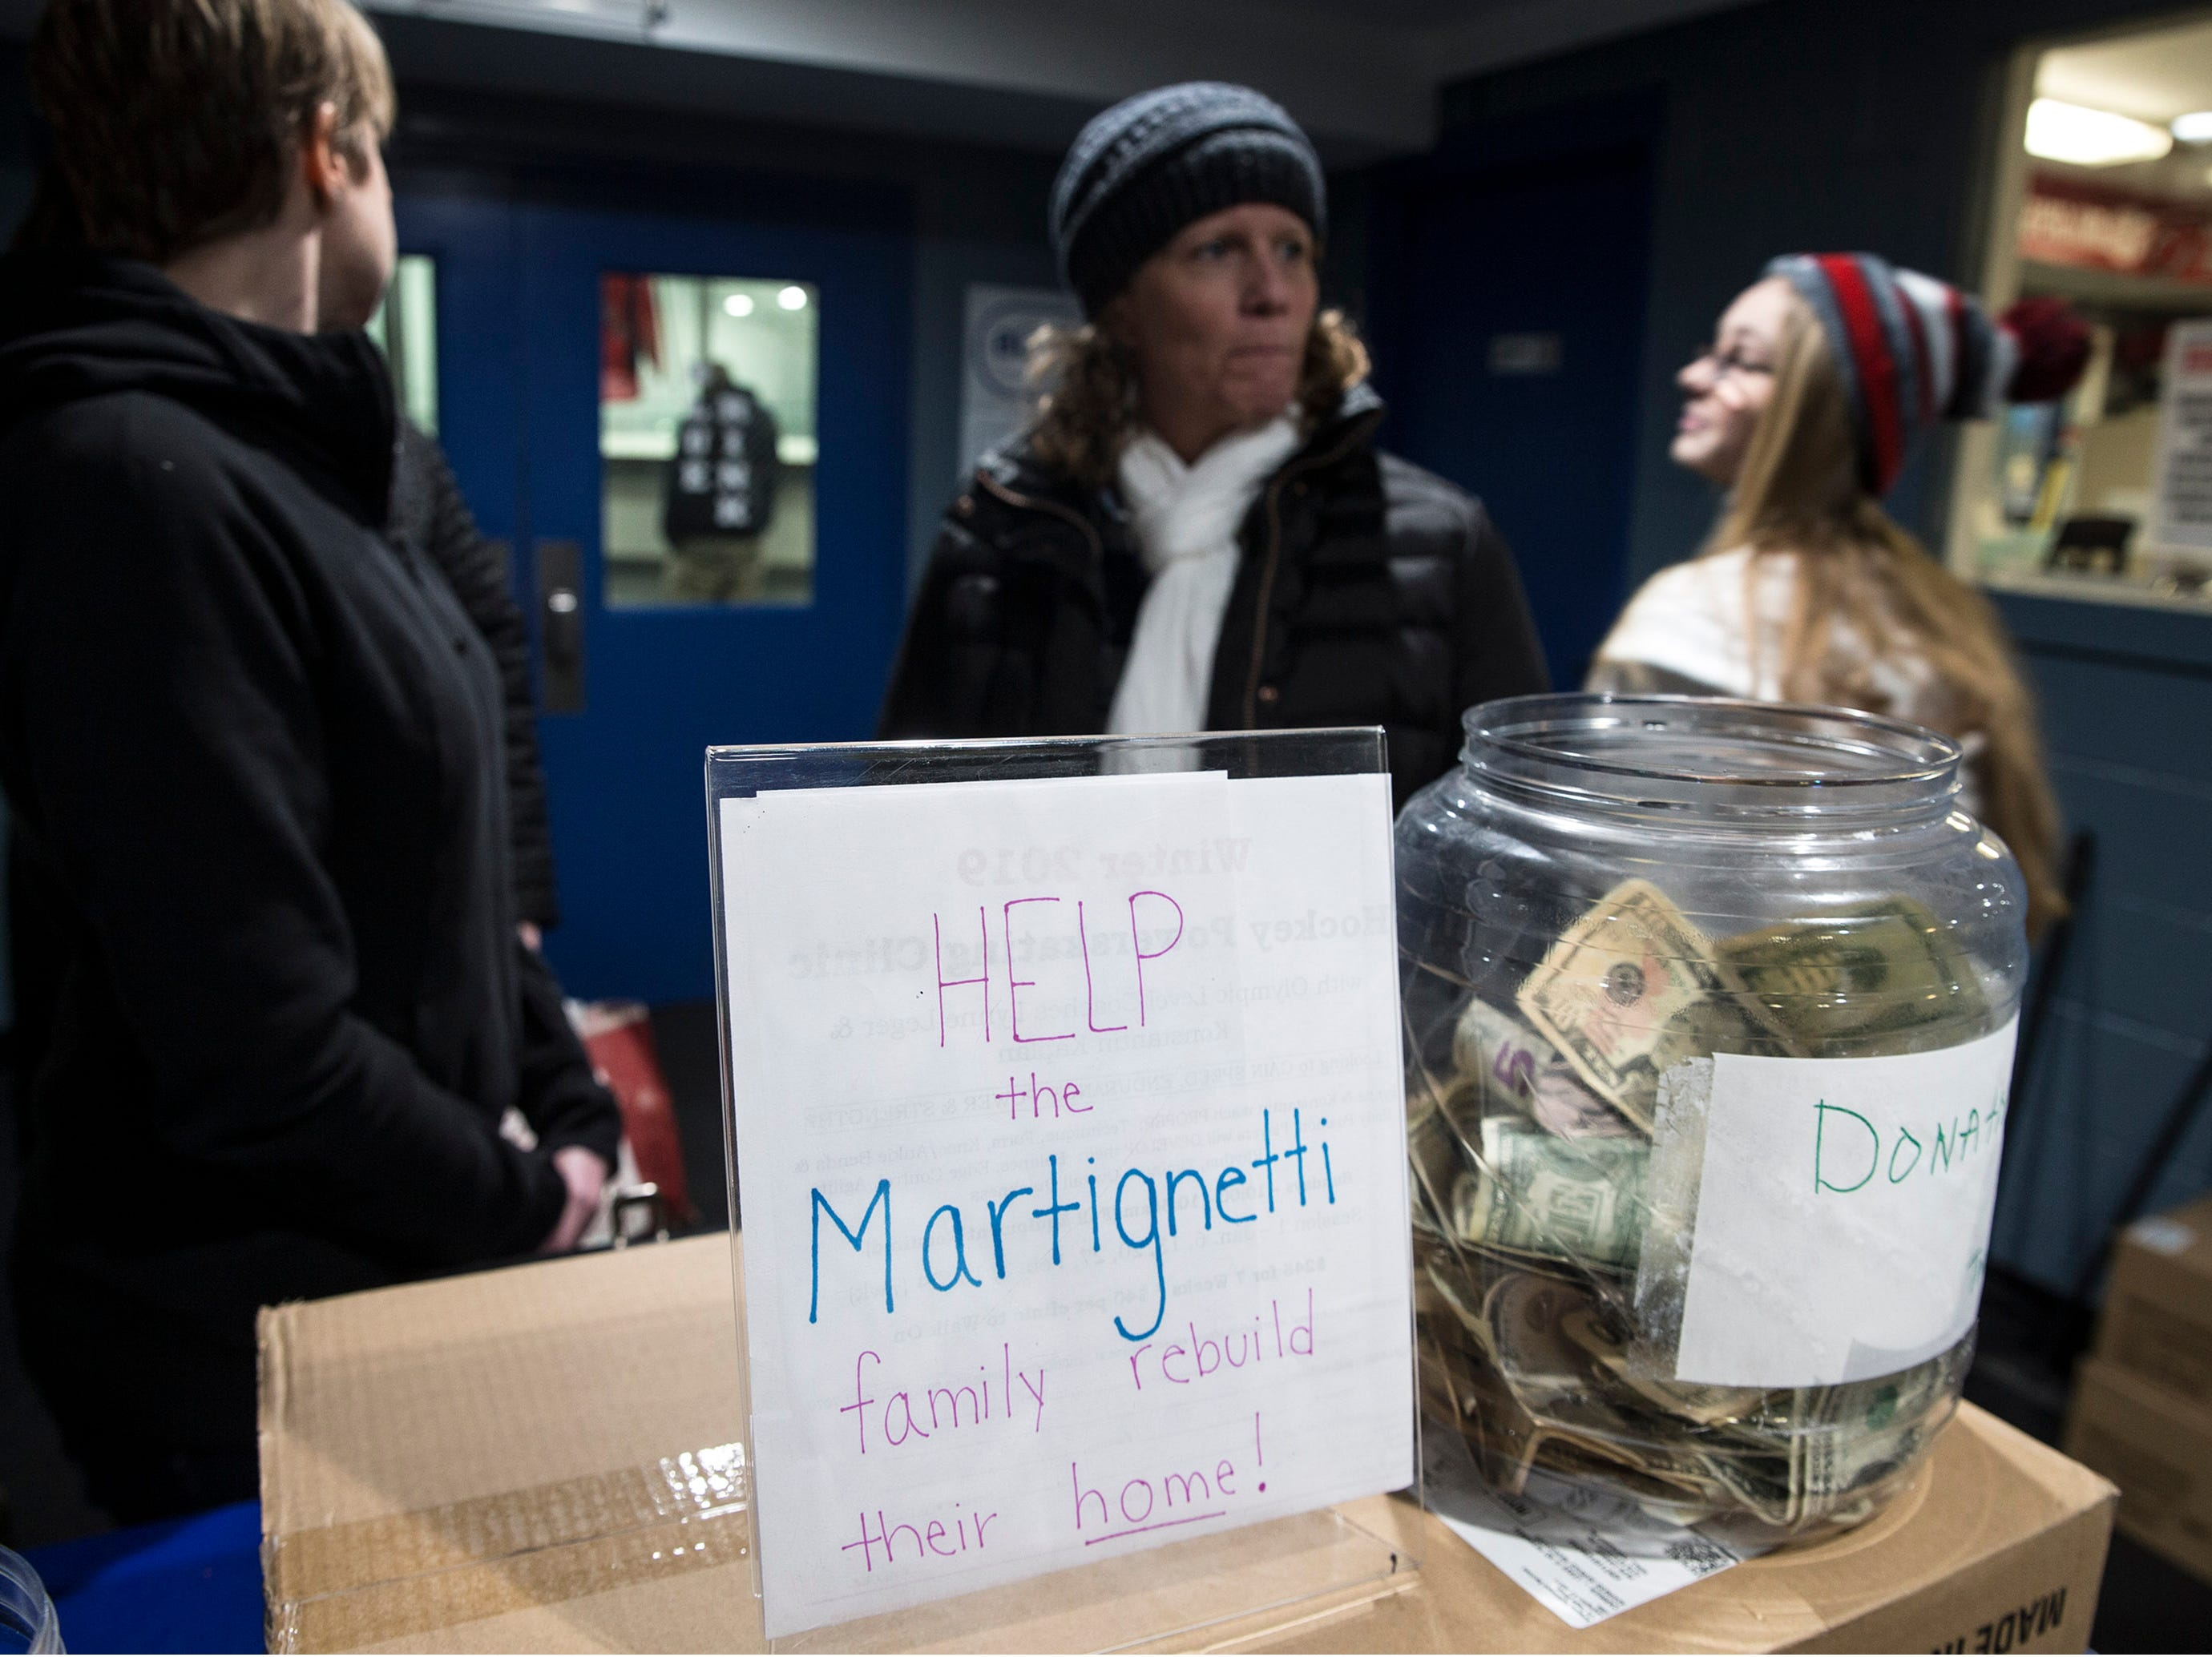 A fundraiser is held at the Jersey Shore Arena for the Martignetti family of Wall, whose family was completely destroyed by a fire last week. One of the daughters attends St. Rose. Both Wall and St. Rose hockey teams have senior night during their games with all proceeds going to the family in need. Wall Township, NJFriday, January 11, 2019